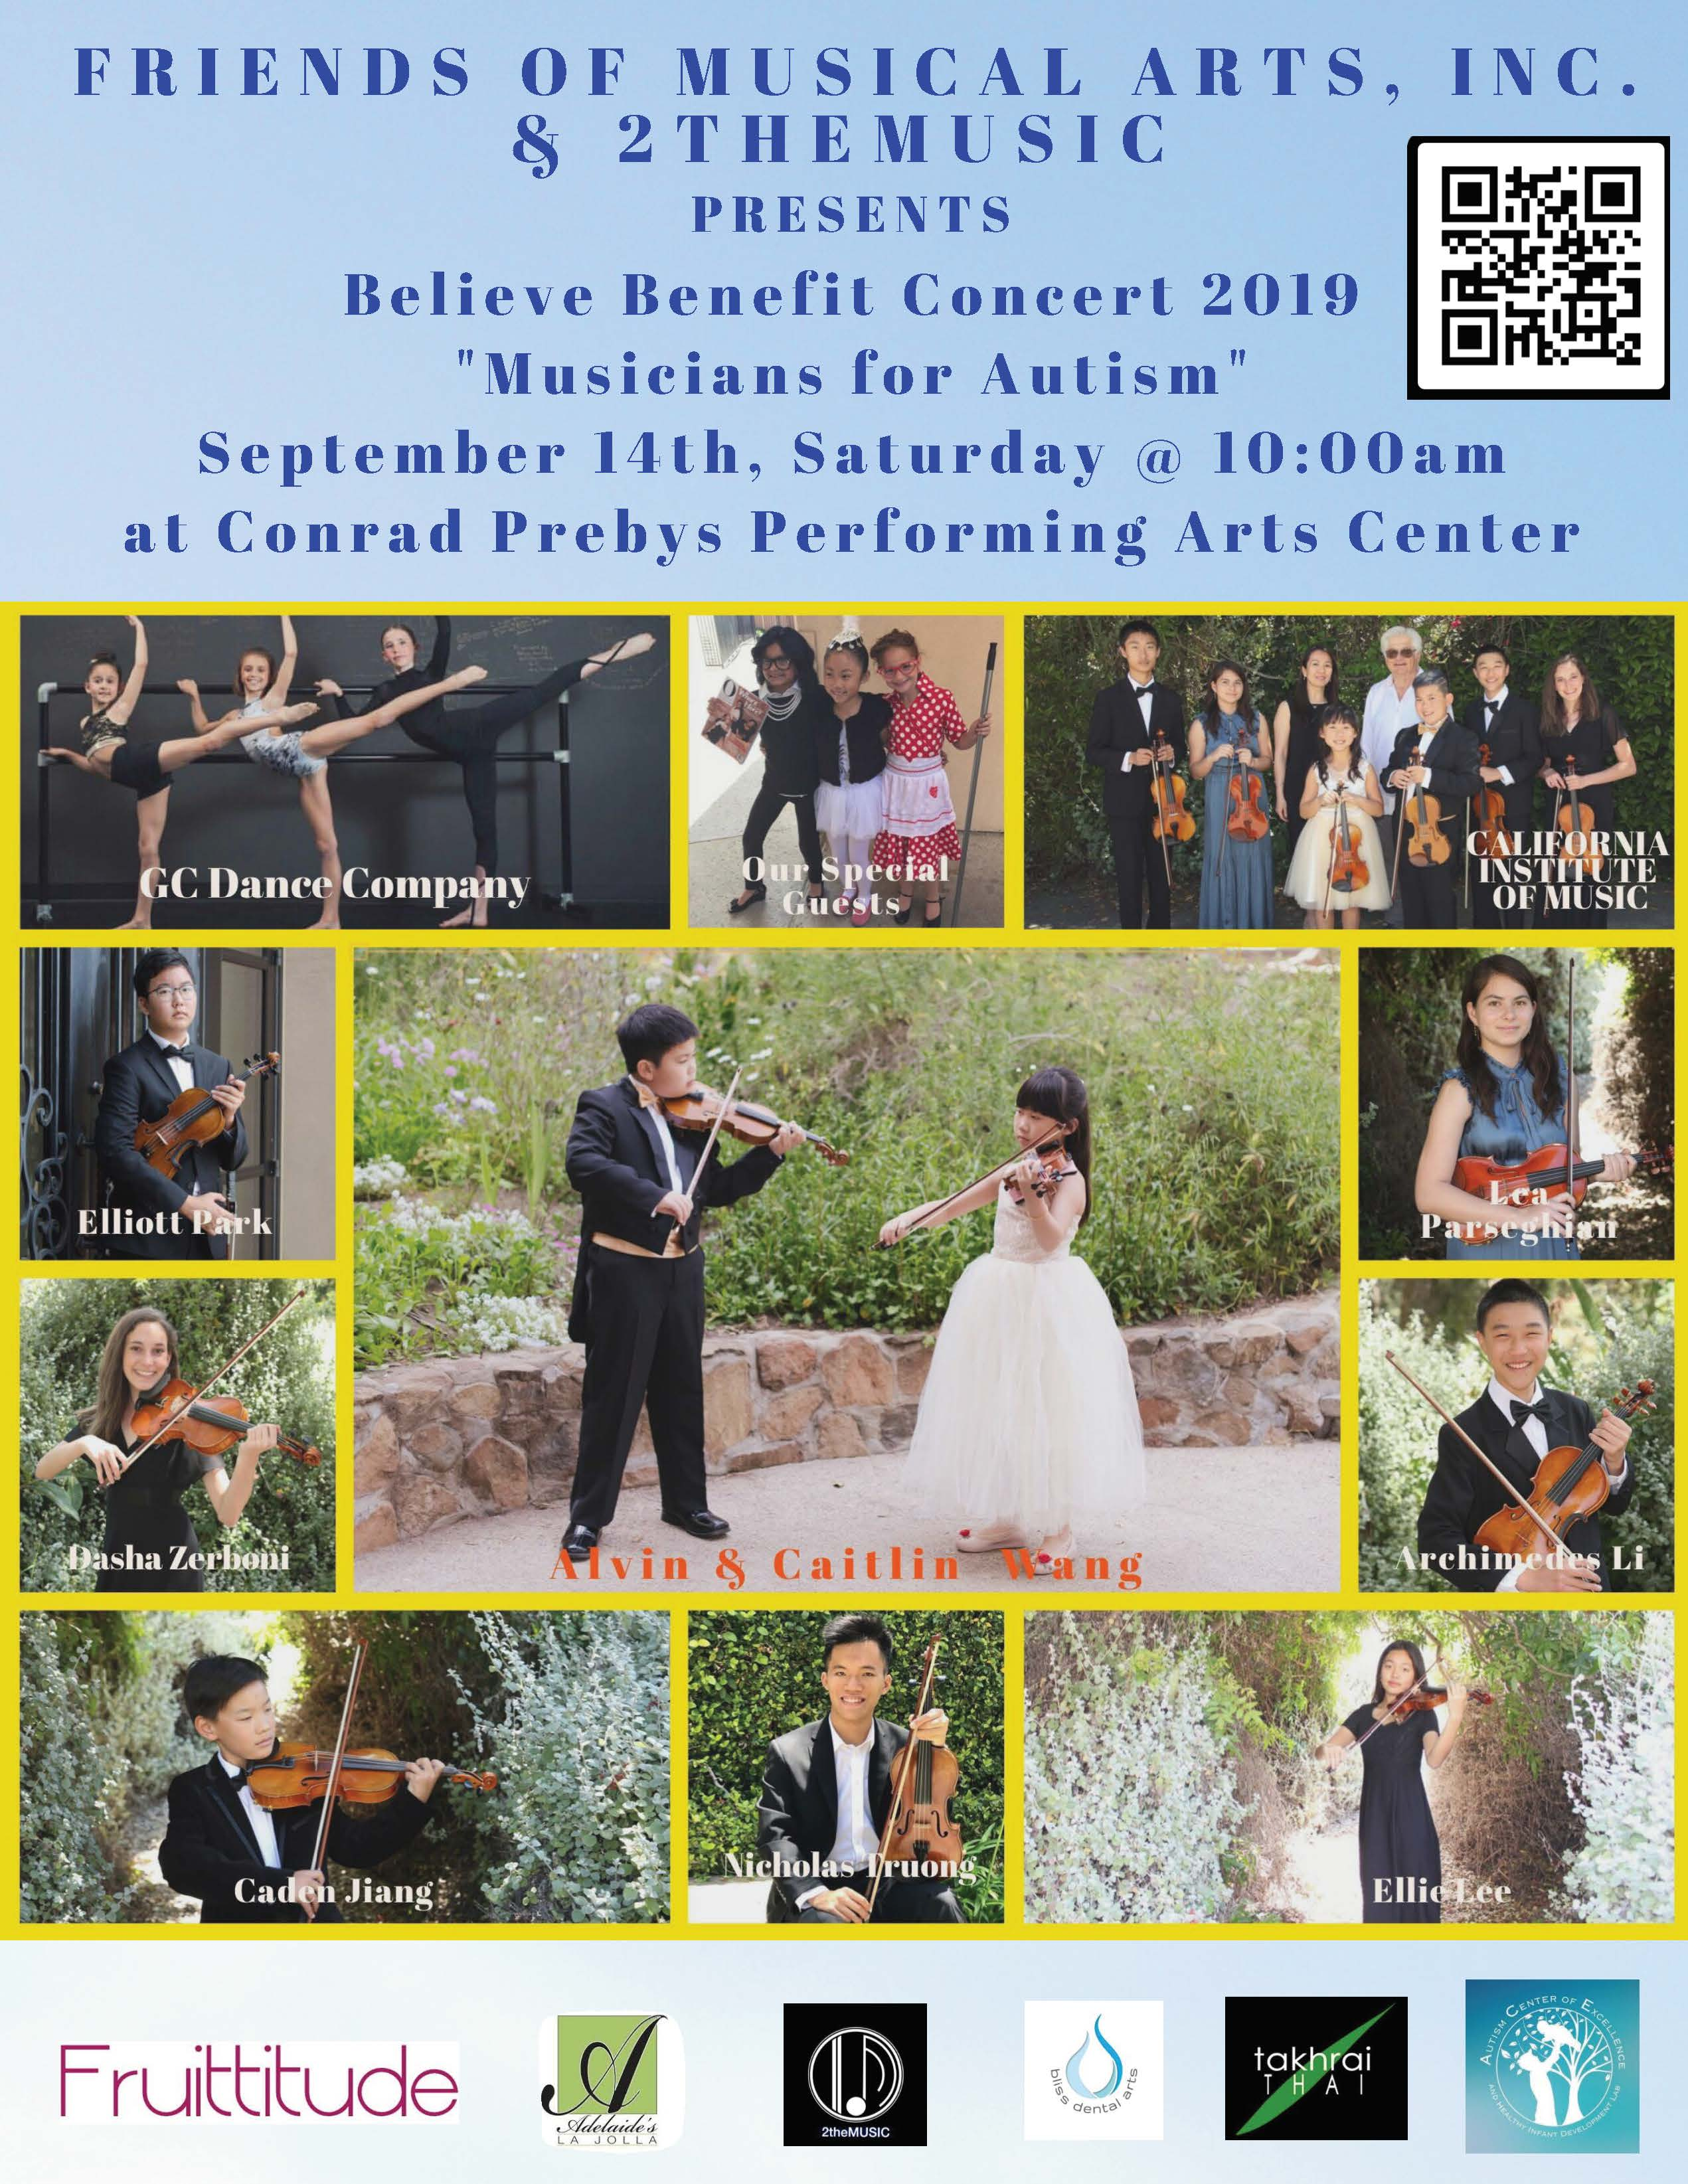 Believe Benefit Concert 2019